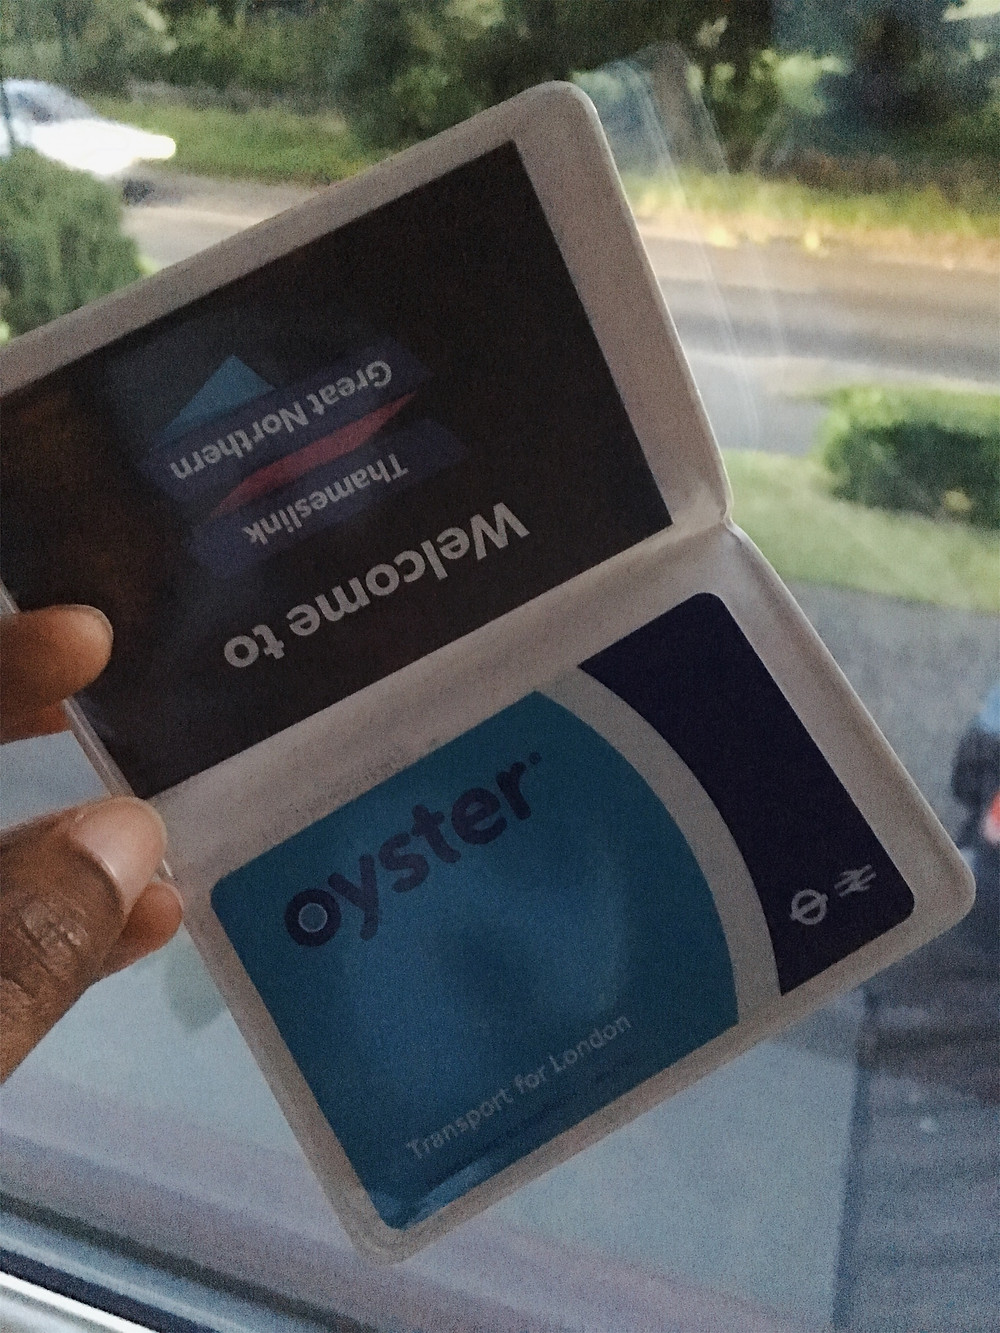 Rail Card and Oyster Card